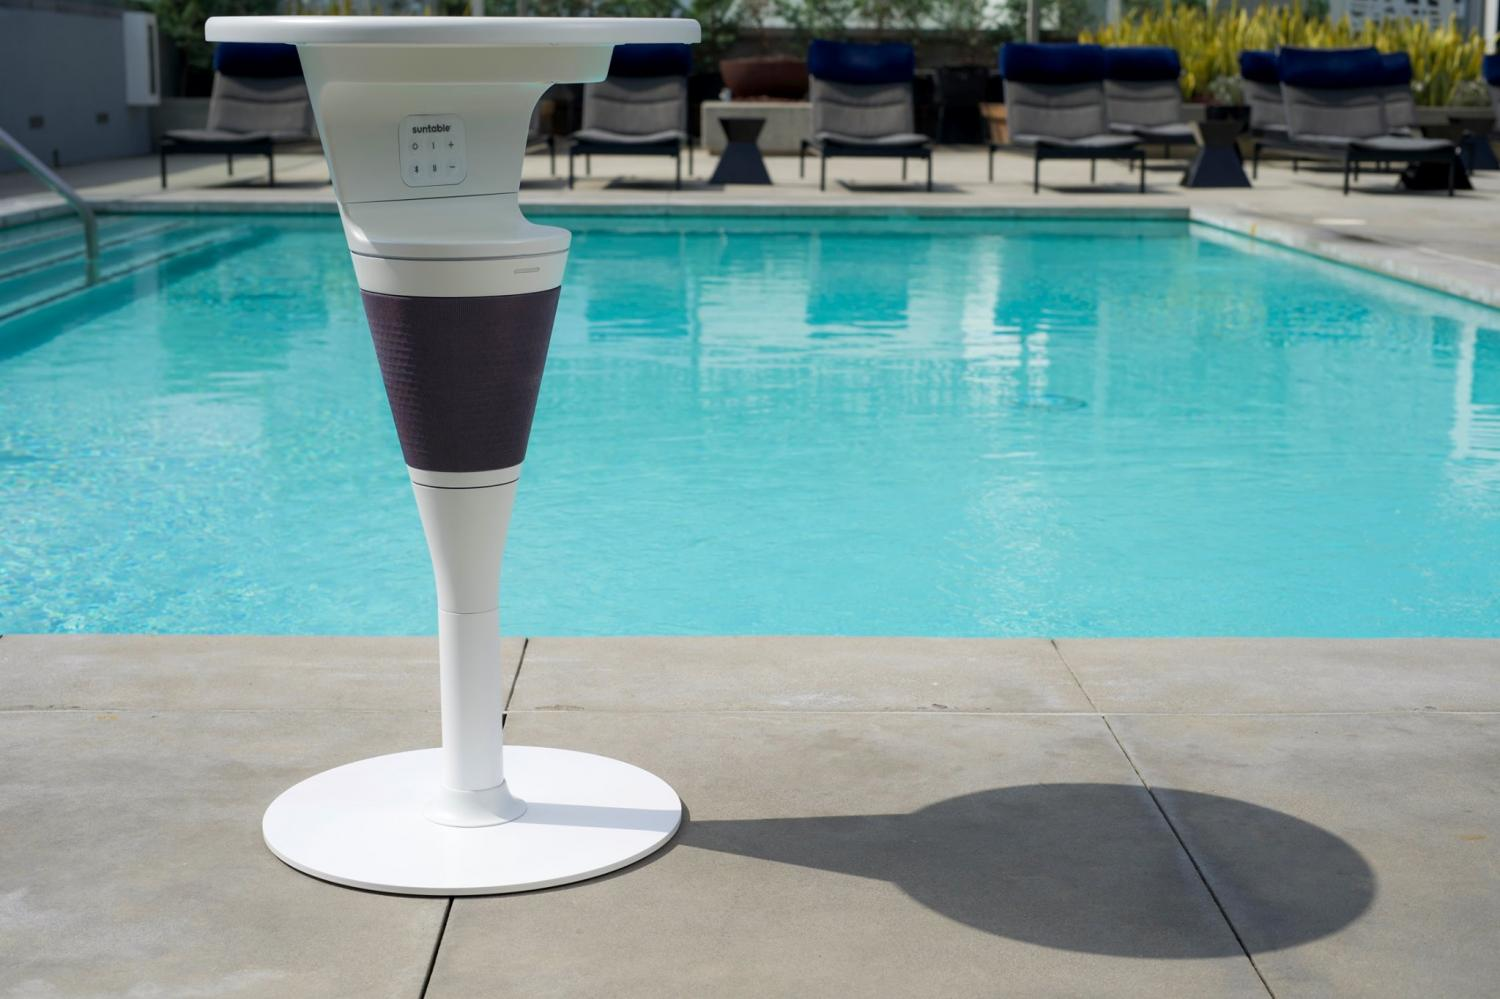 SunTable Is a 3-in-1 Solar Powered Table With an Integrated Speaker and Wireless Charger - Solar powered poolside table